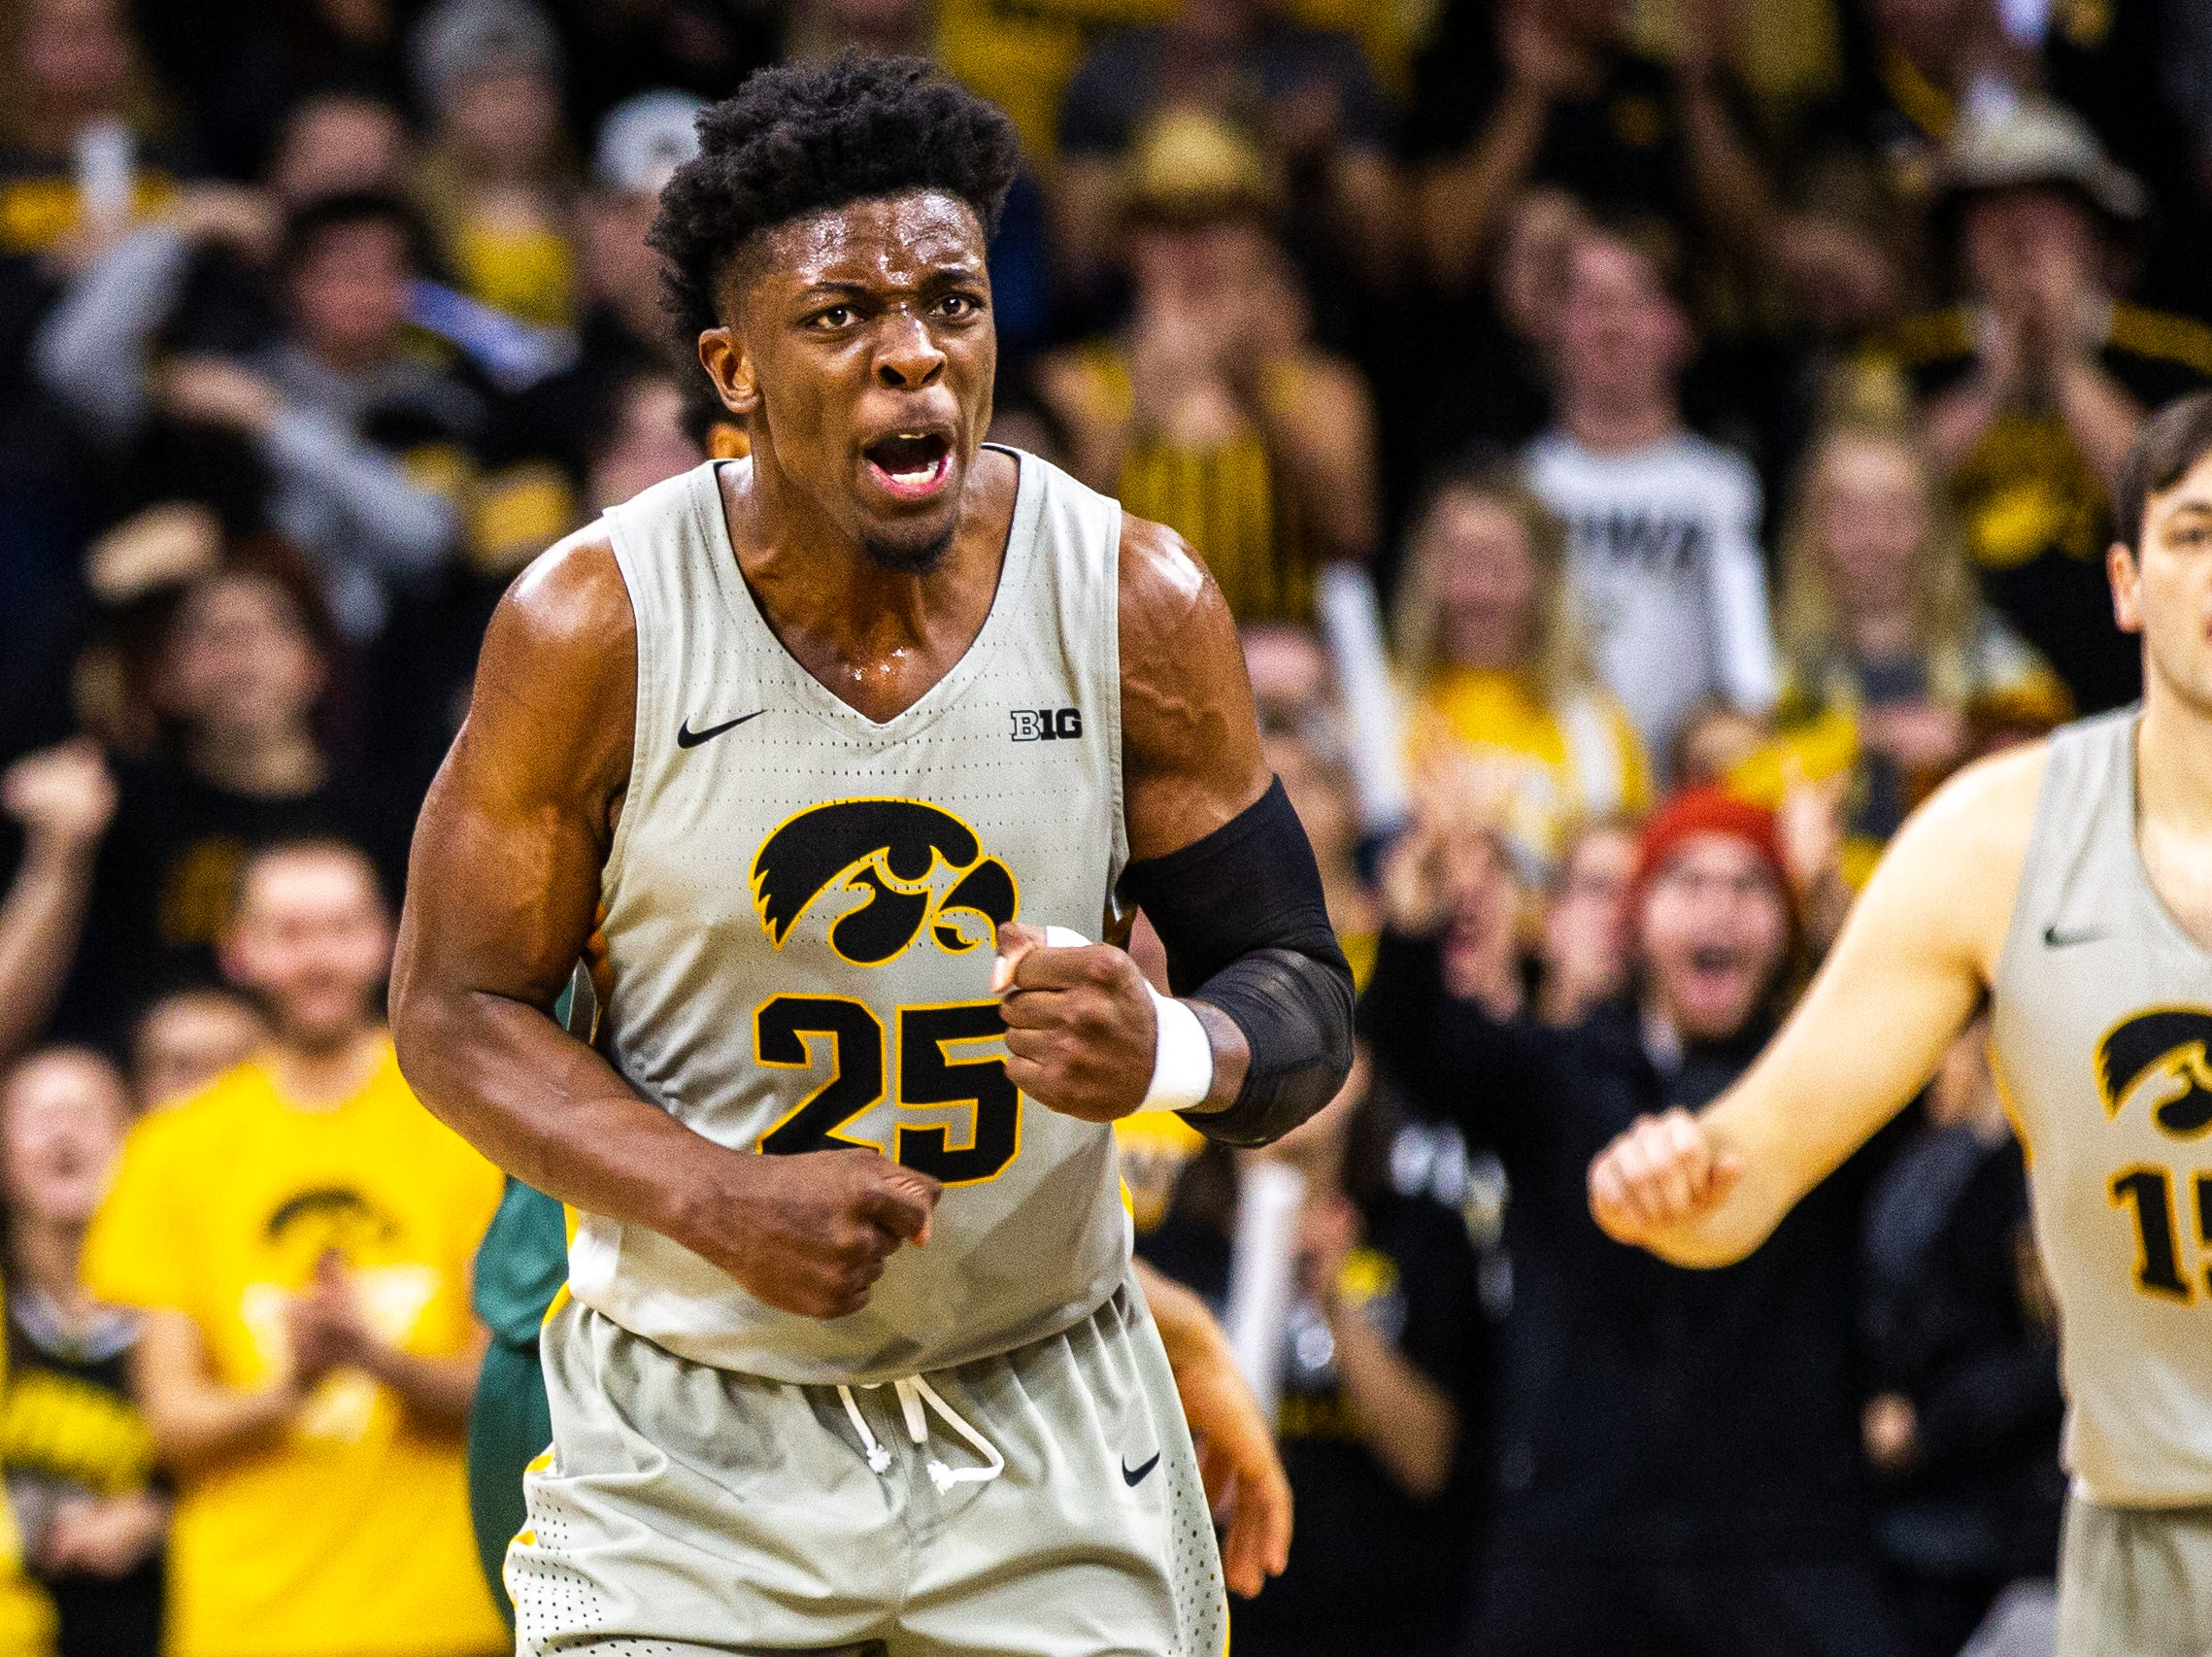 Iowa forward Tyler Cook (25) celebrates during a NCAA Big Ten Conference men's basketball game on Thursday, Jan. 24, 2019, at Carver-Hawkeye Arena in Iowa City, Iowa.